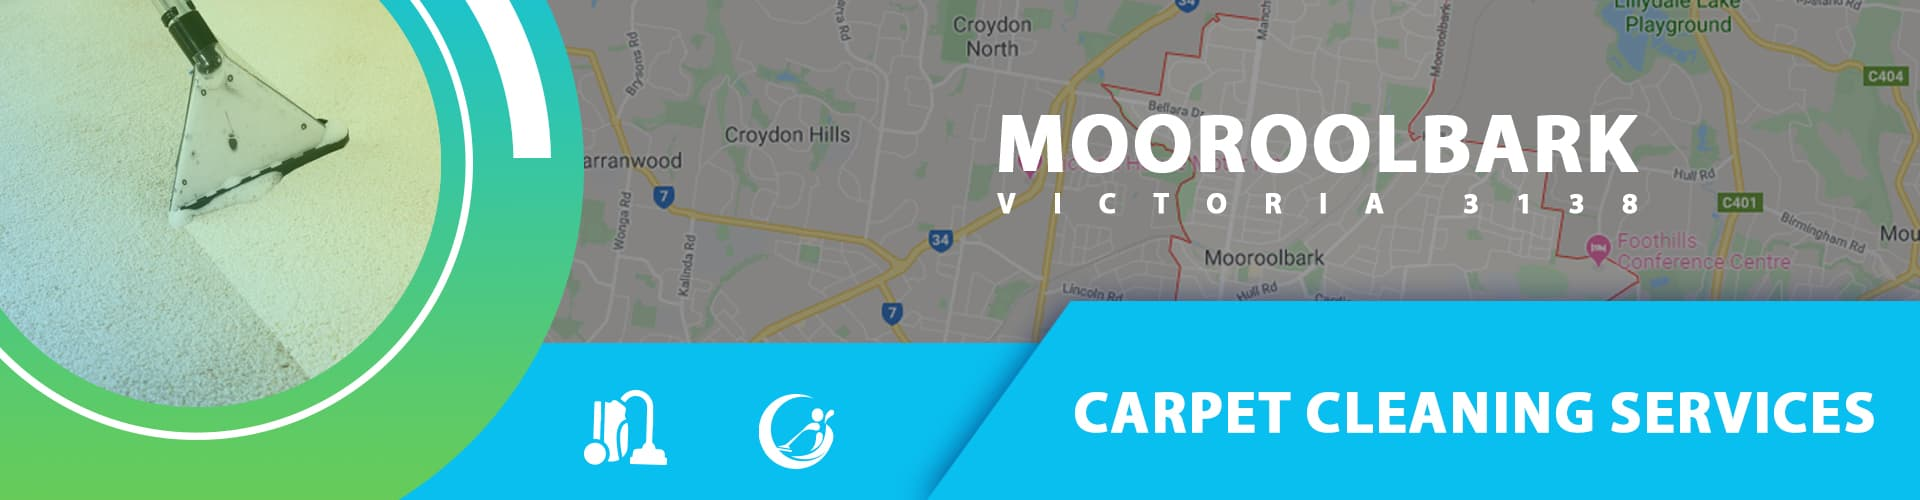 Carpet Cleaning Mooroolbarka